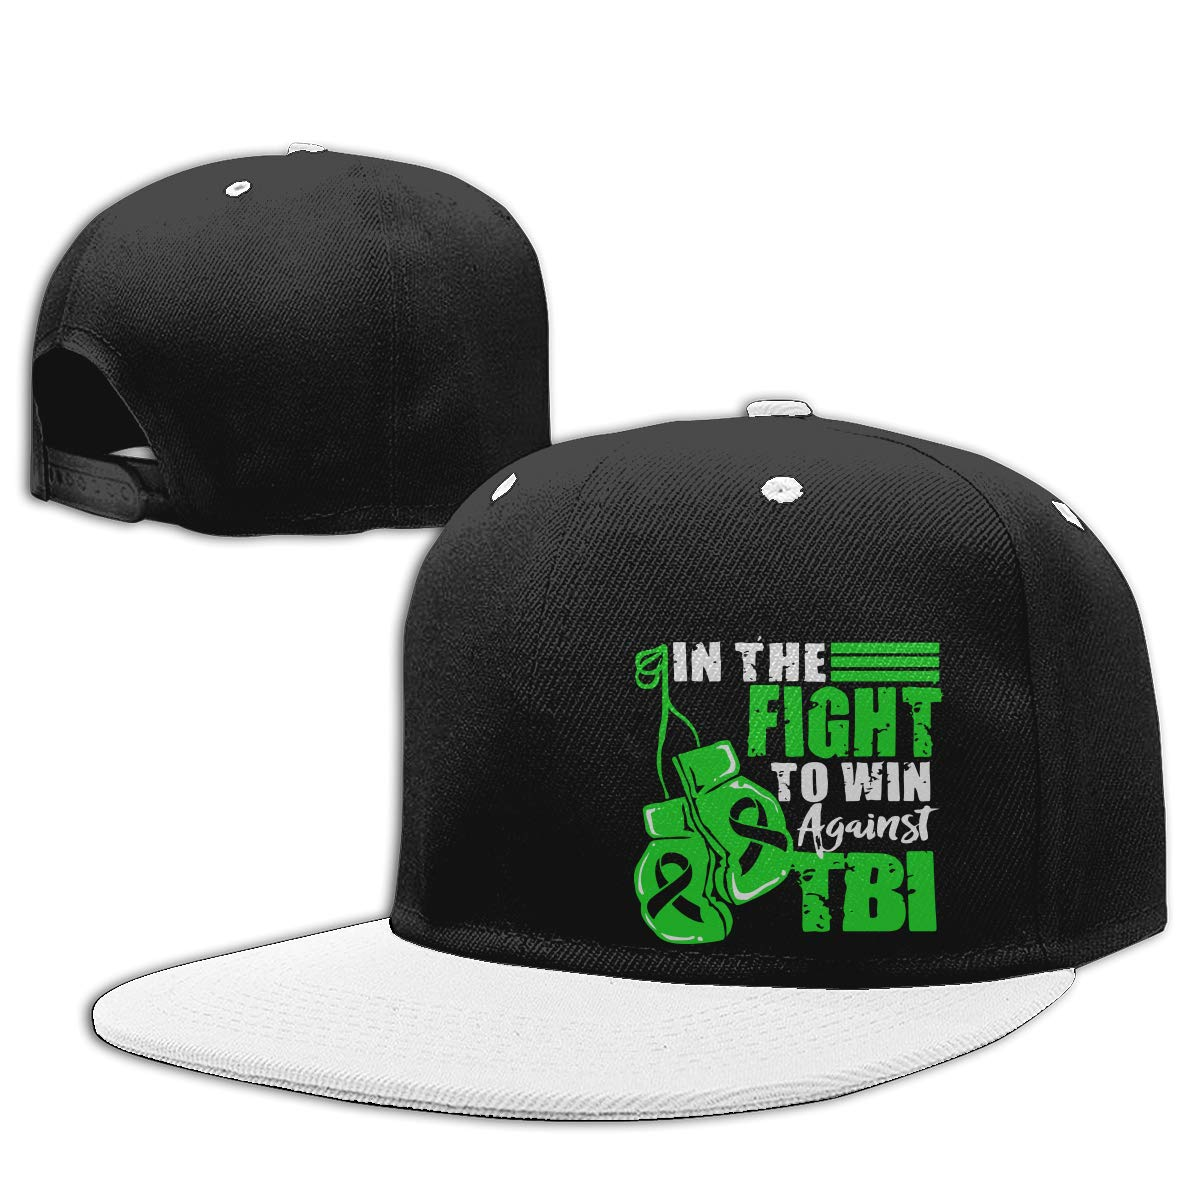 NMG-01 Men and Women Hiphop Cap Brain Injury Awareness Adults Flat Peaked Baseball Caps